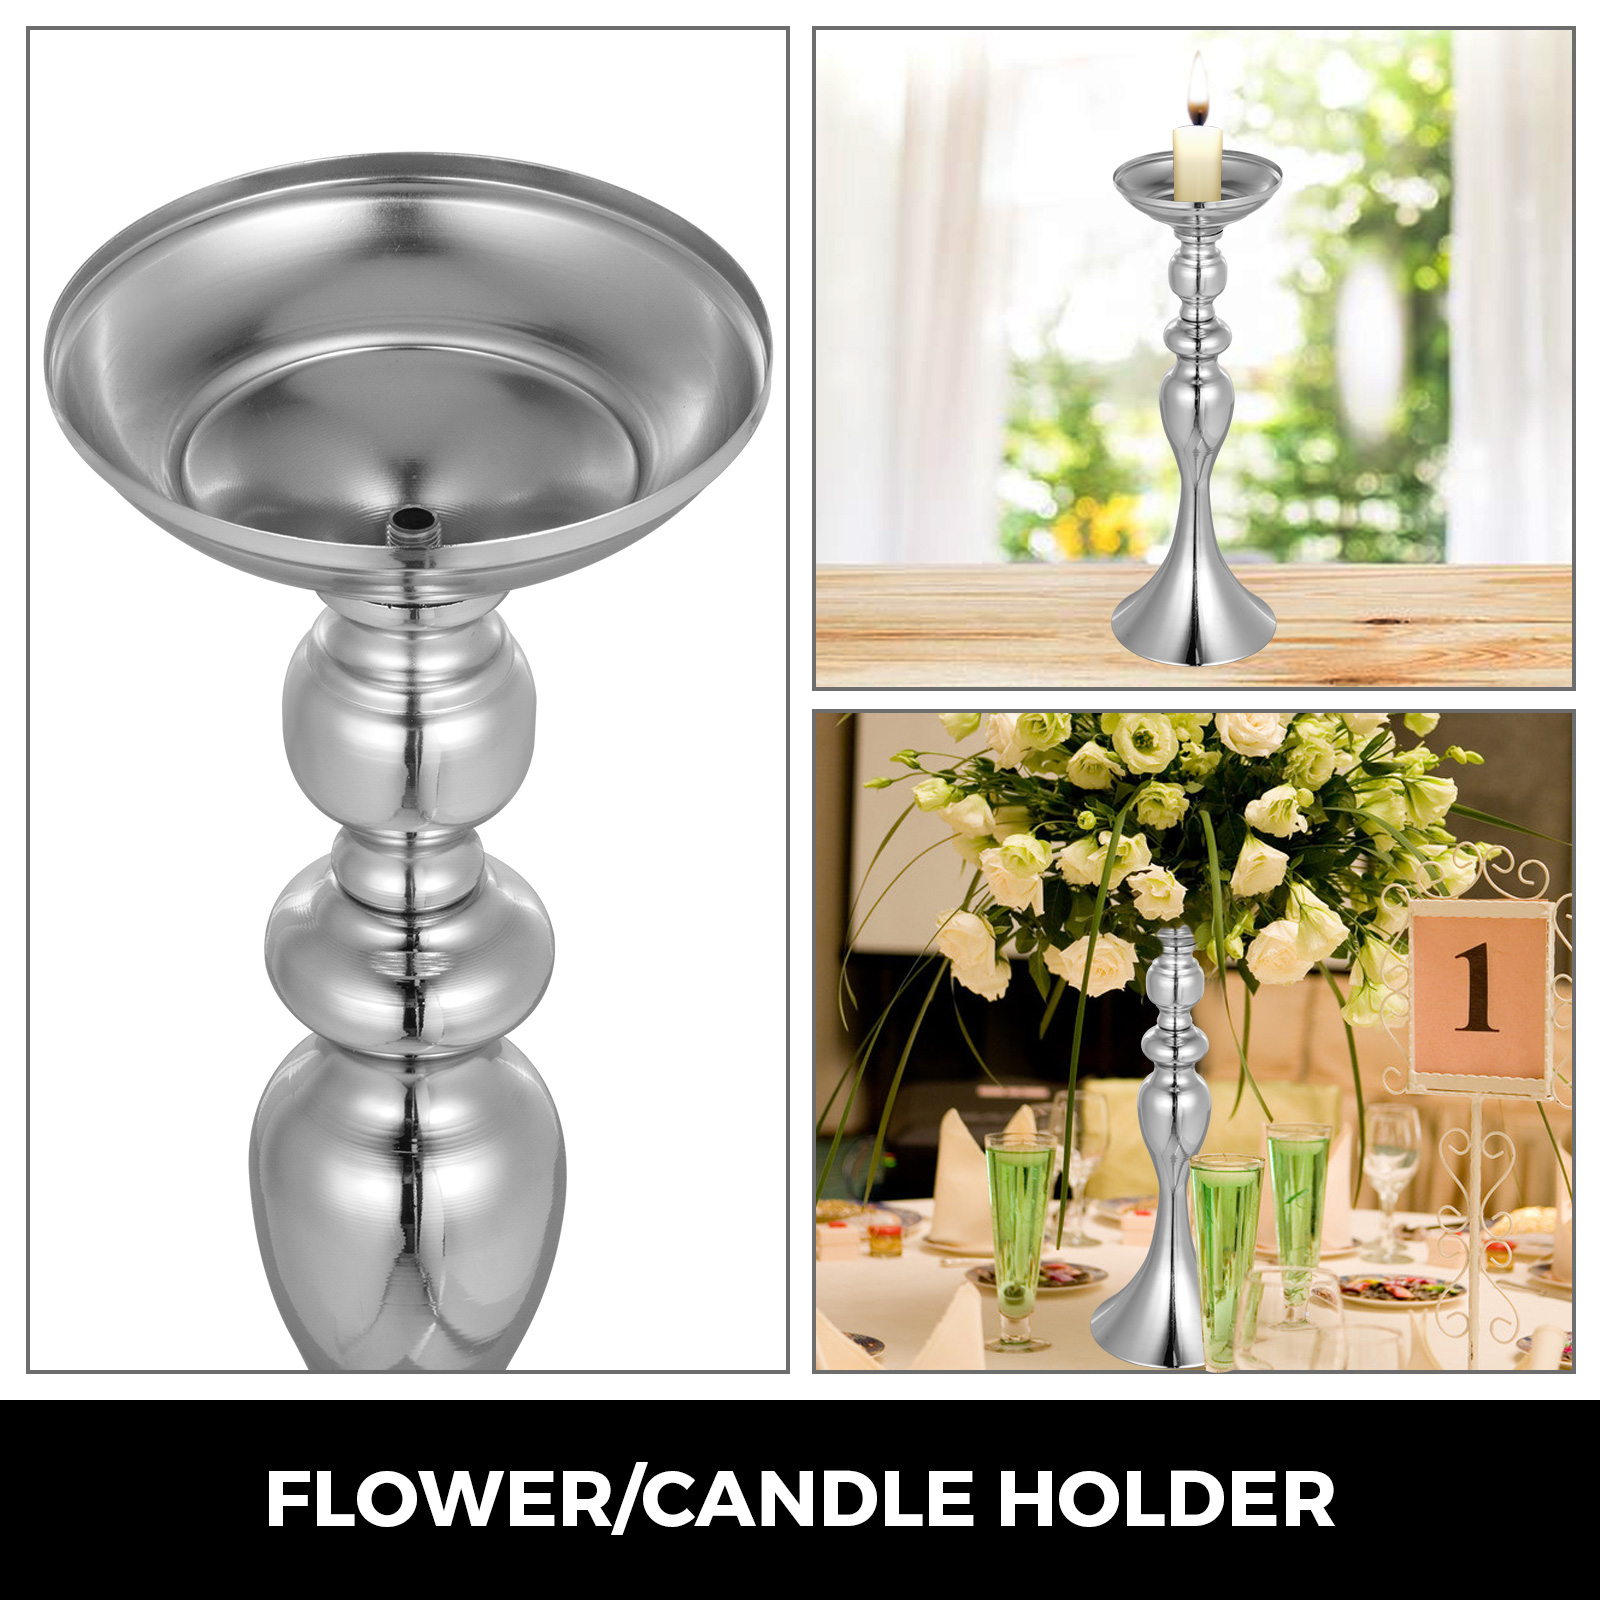 Flower-Rack-for-Wedding-Metal-Candle-Stand-4-11pcs-Centerpiece-Flower-Vase thumbnail 159